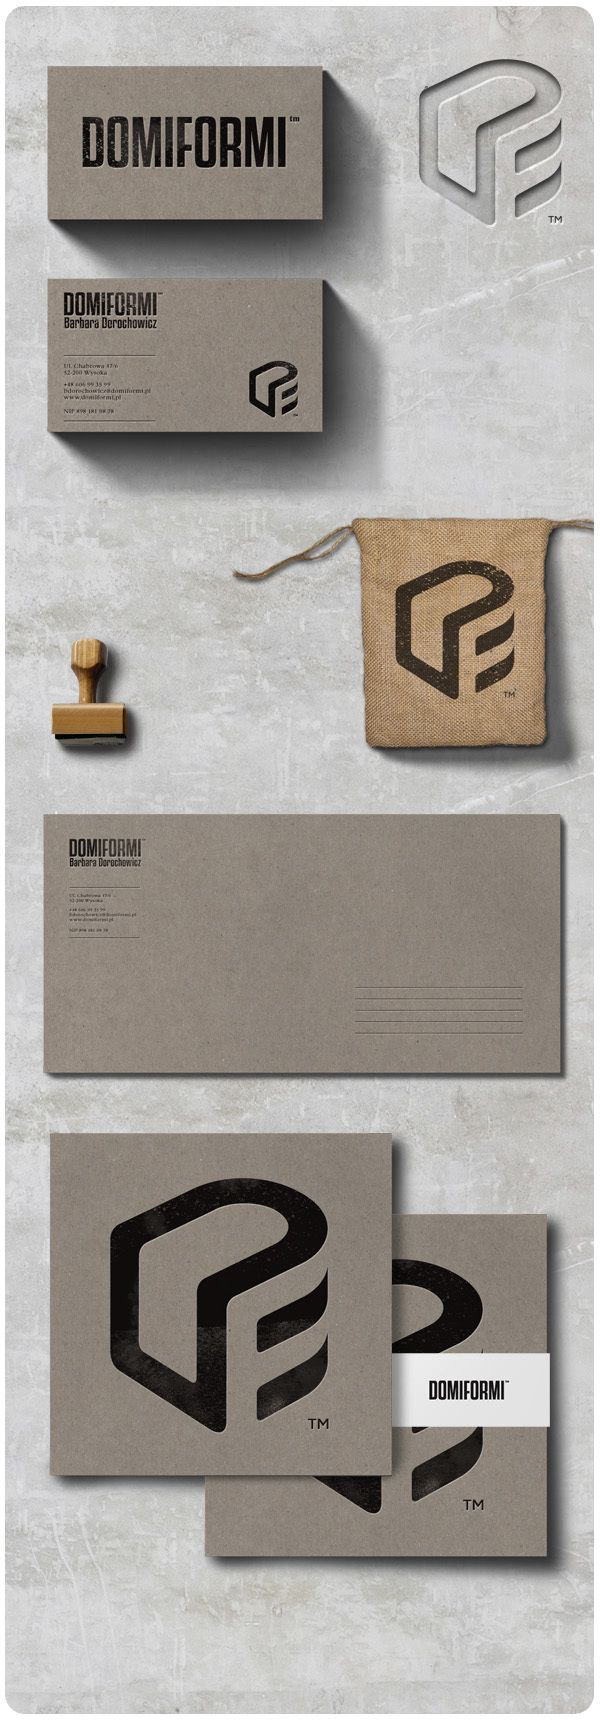 Domiformi | Concept by Marcin Przybyse | Behance | corporate design | corporate identity